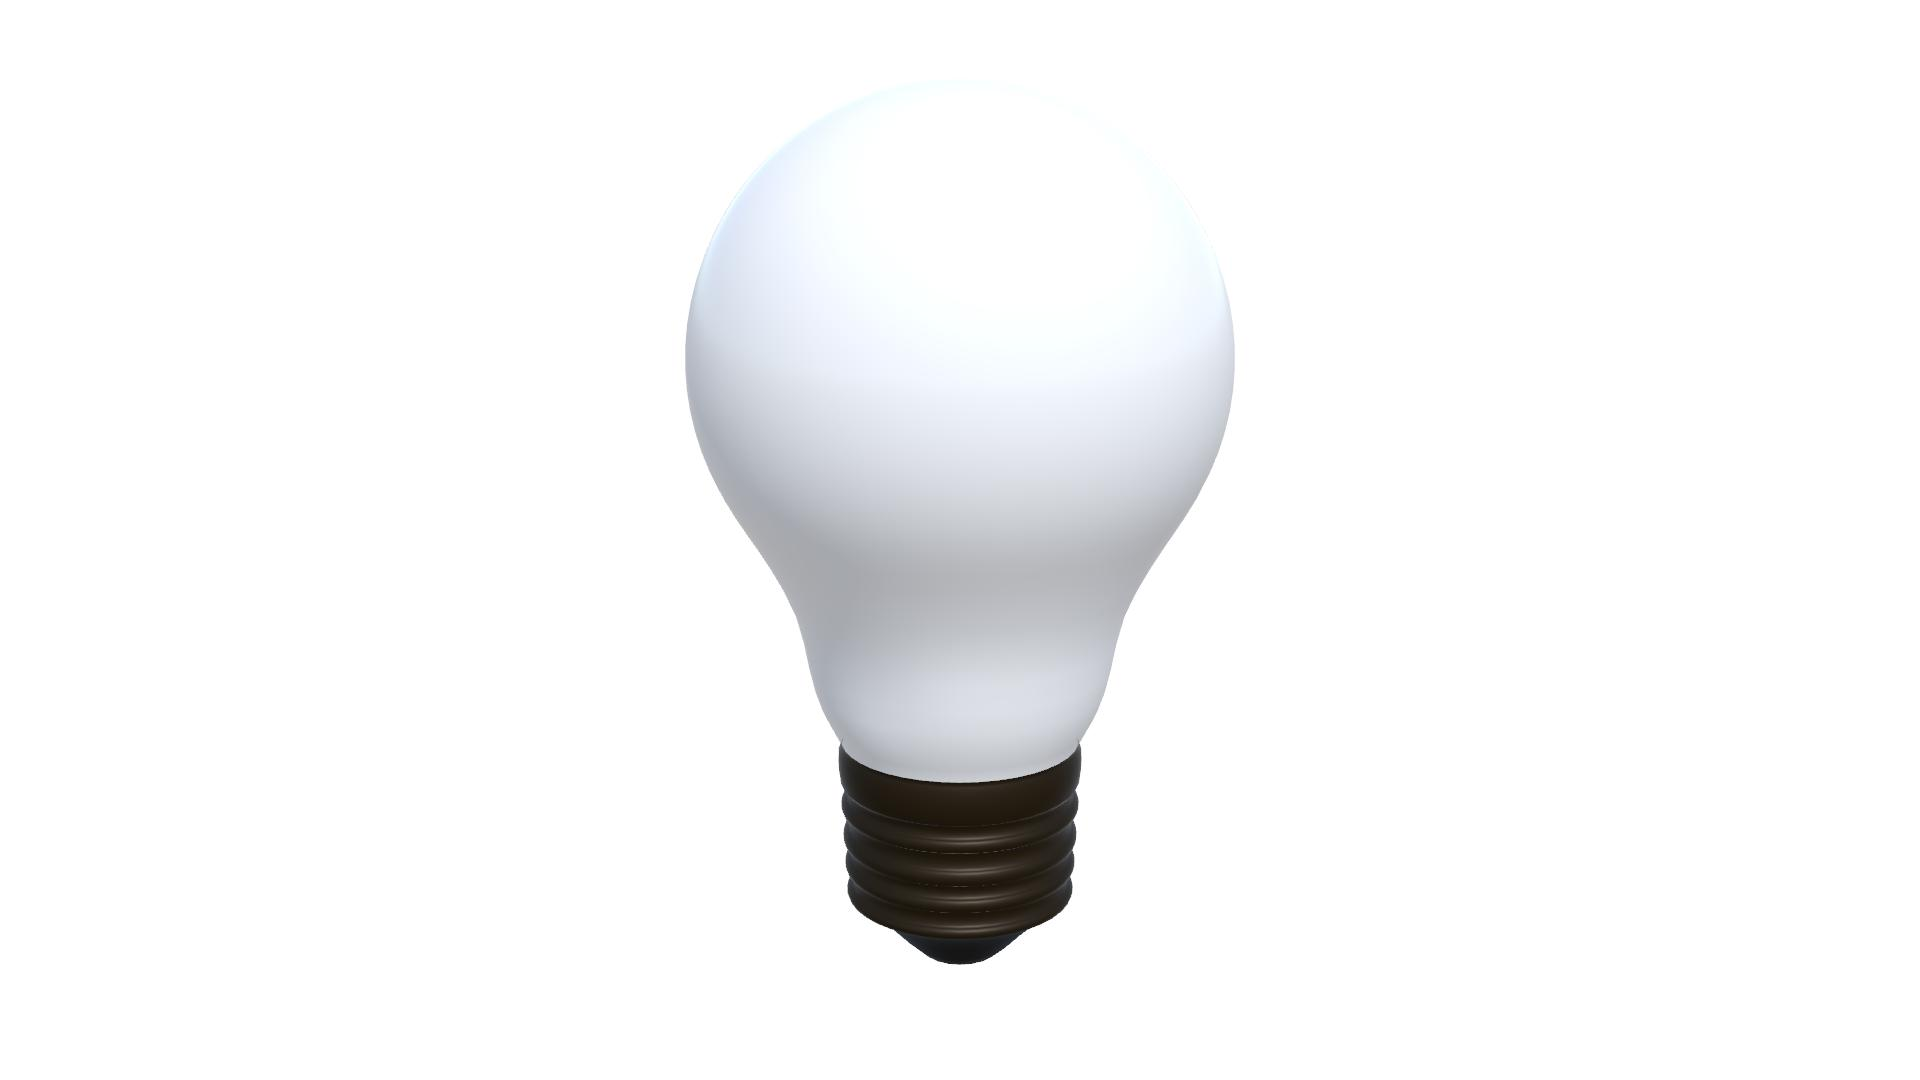 Simple light bulb